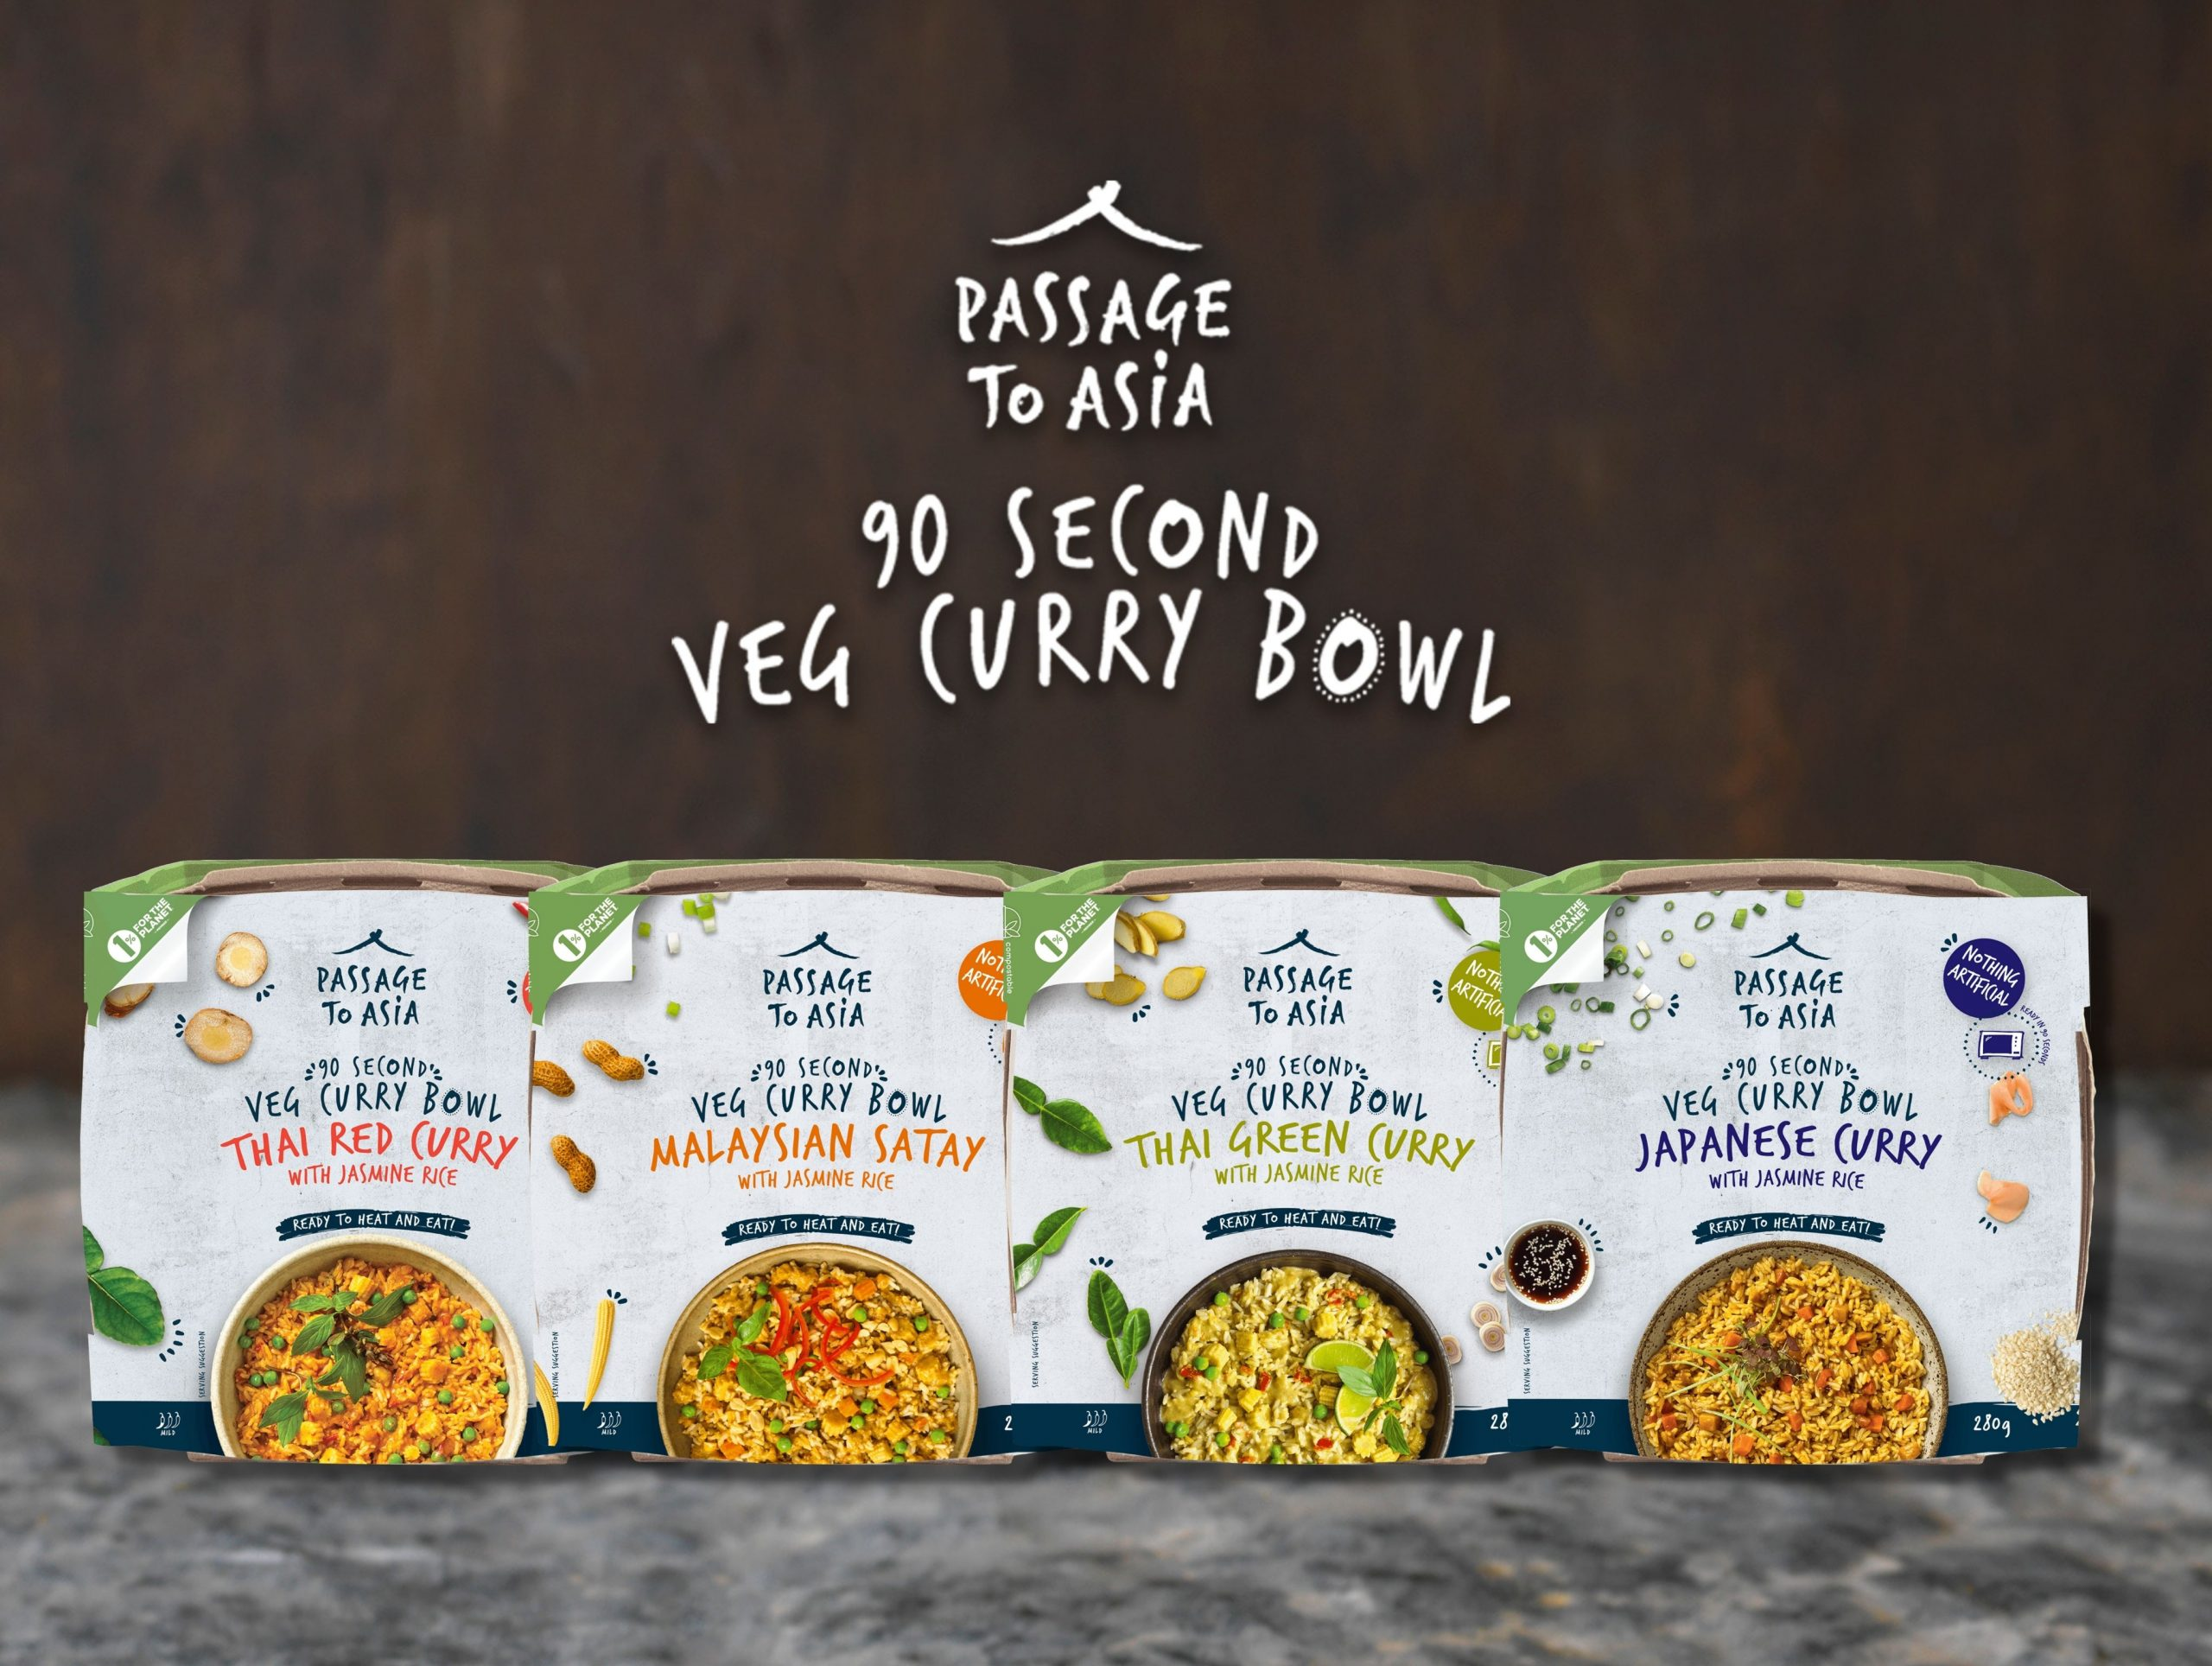 Celebrate Health News Passage to Asia Veg Curry Bowl Giveaway Feature Image